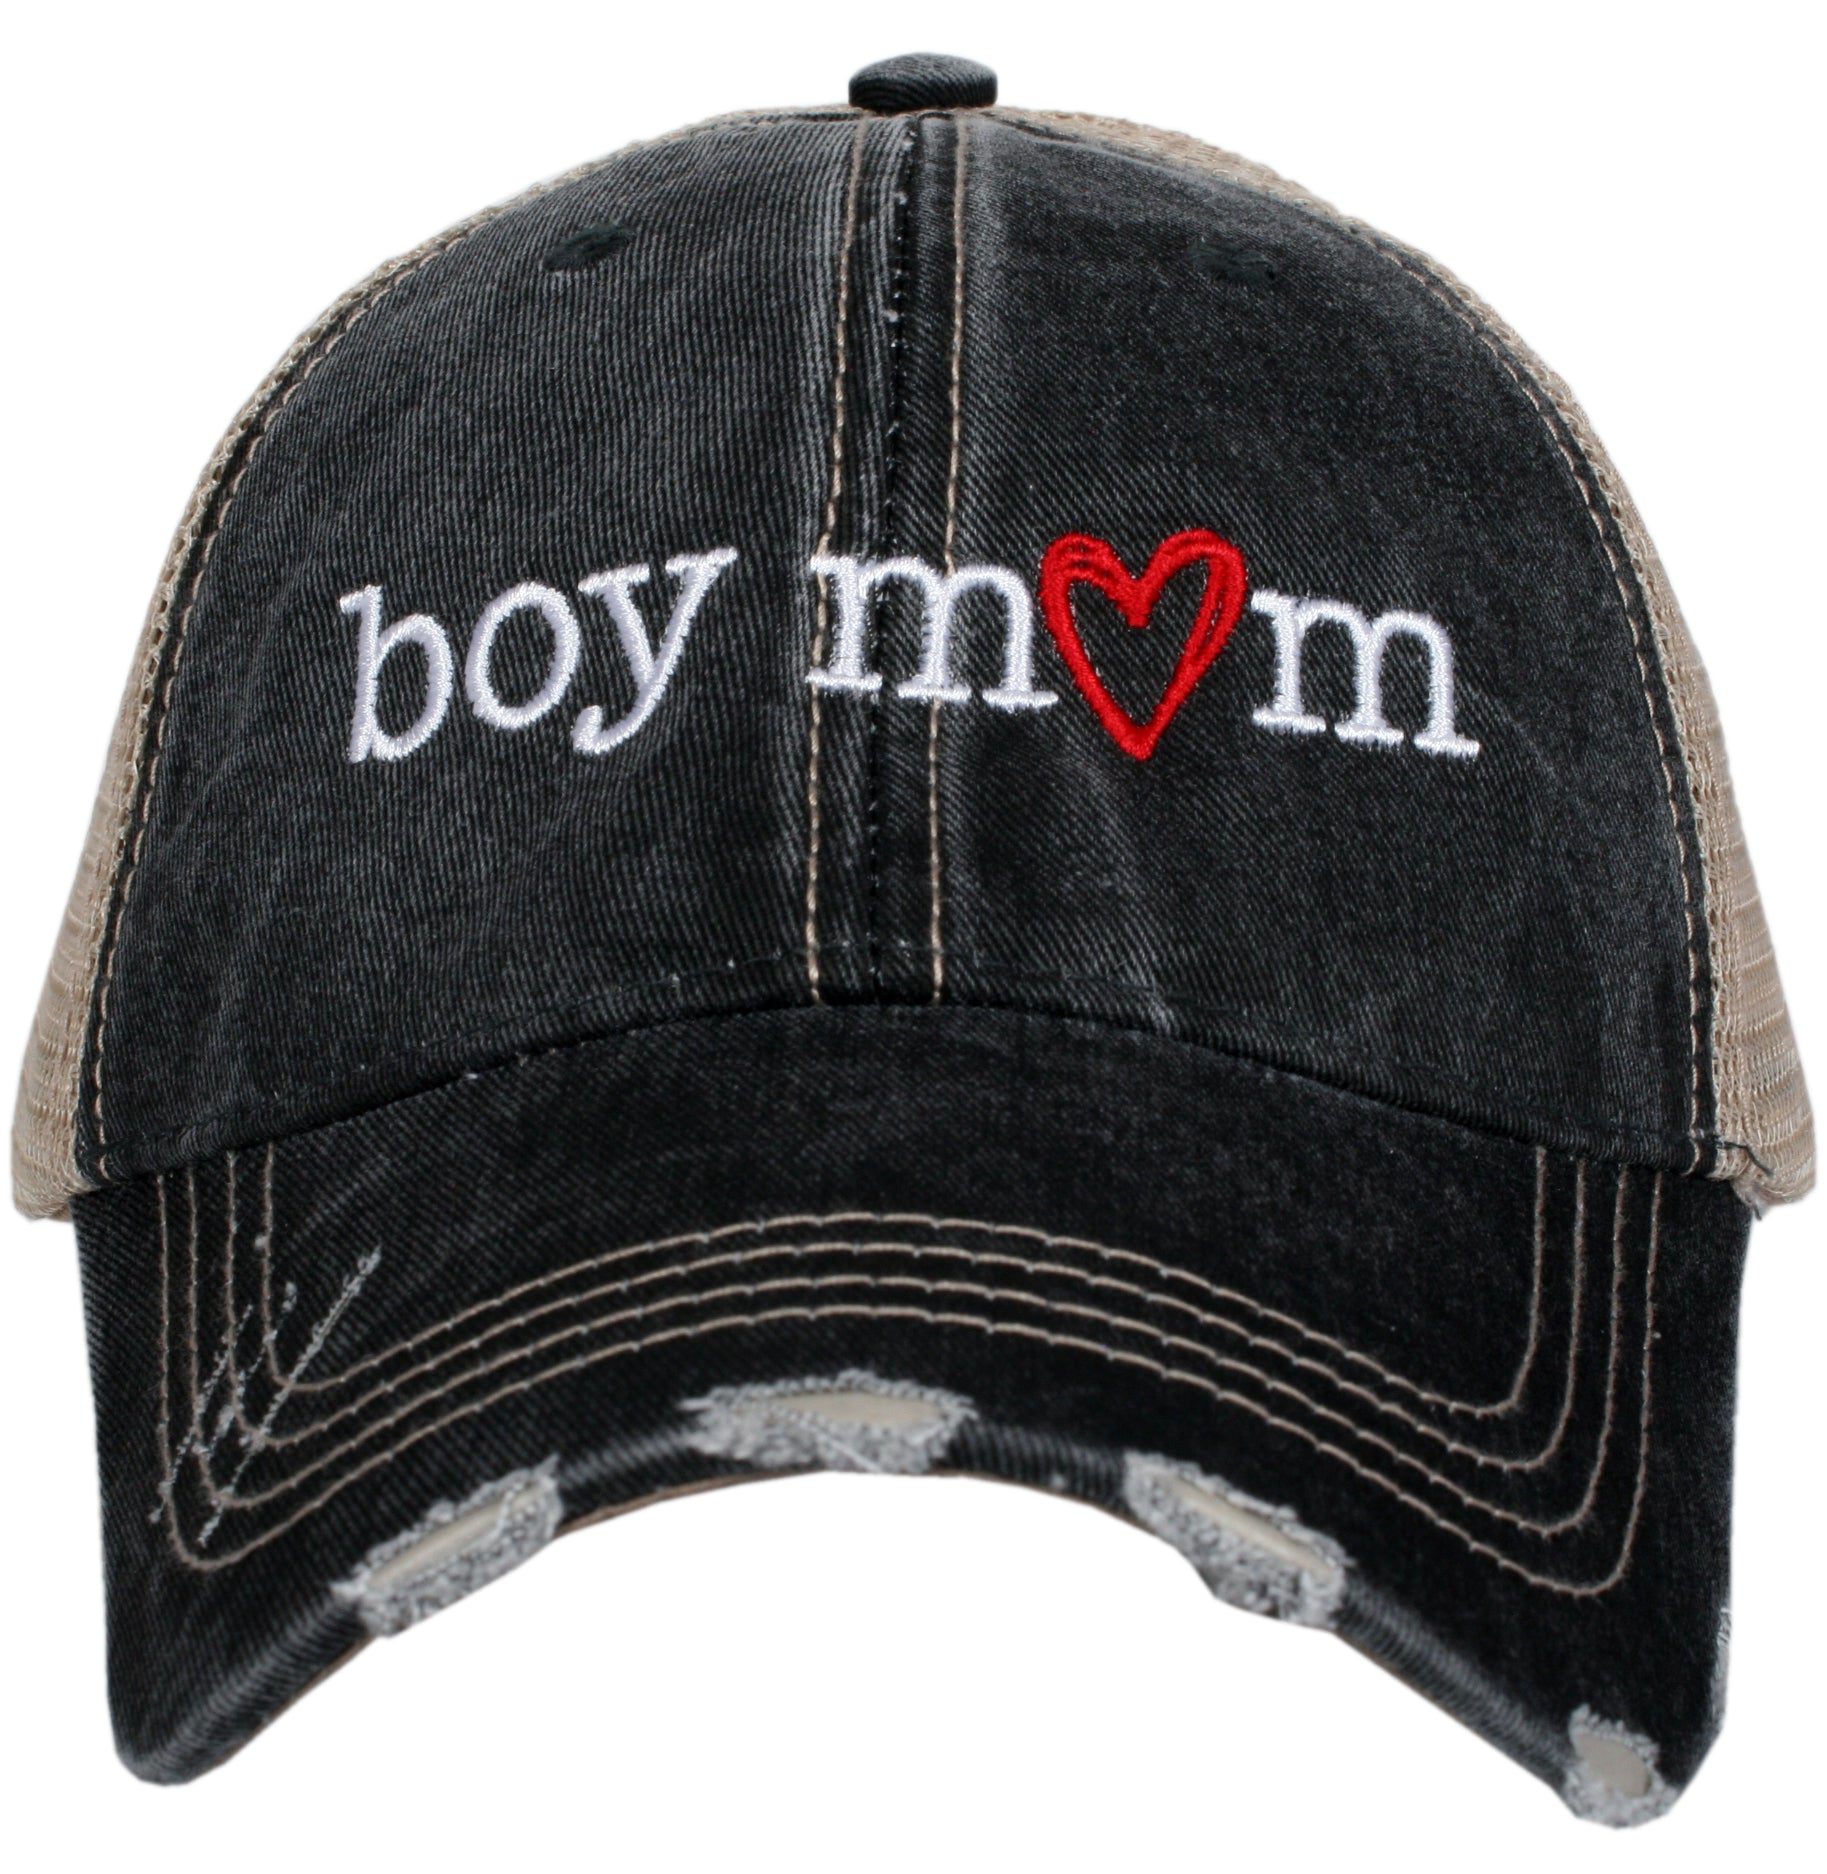 Katydid Boy Mom Wholesale Trucker Hats